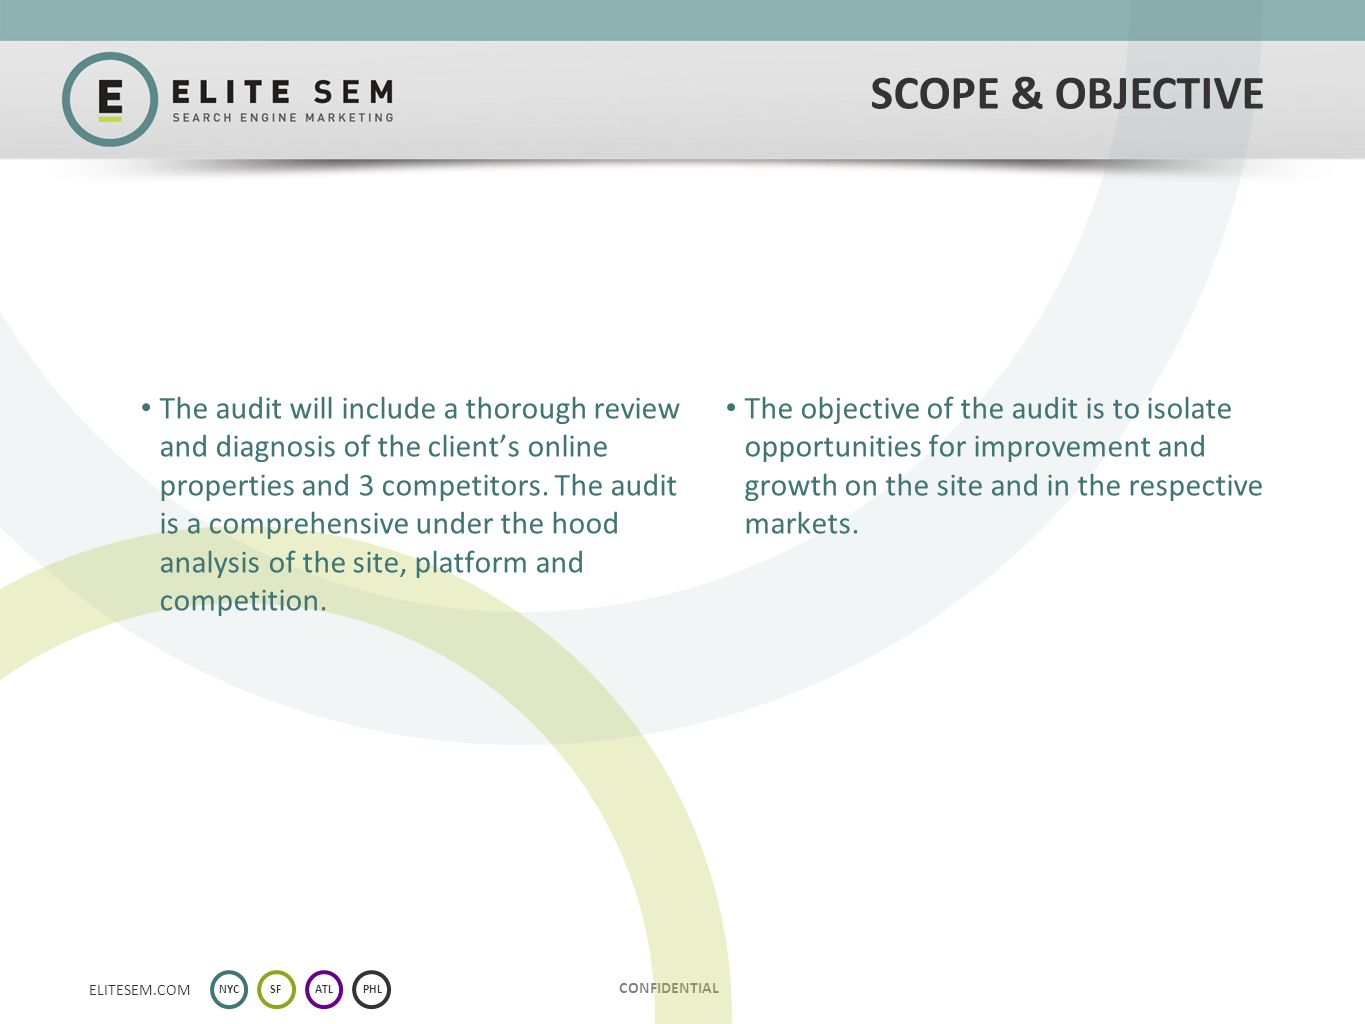 NYCSFATLPHL ELITESEM.COM CONFIDENTIAL SCOPE & OBJECTIVE The audit will include a thorough review and diagnosis of the client's online properties and 3 competitors.